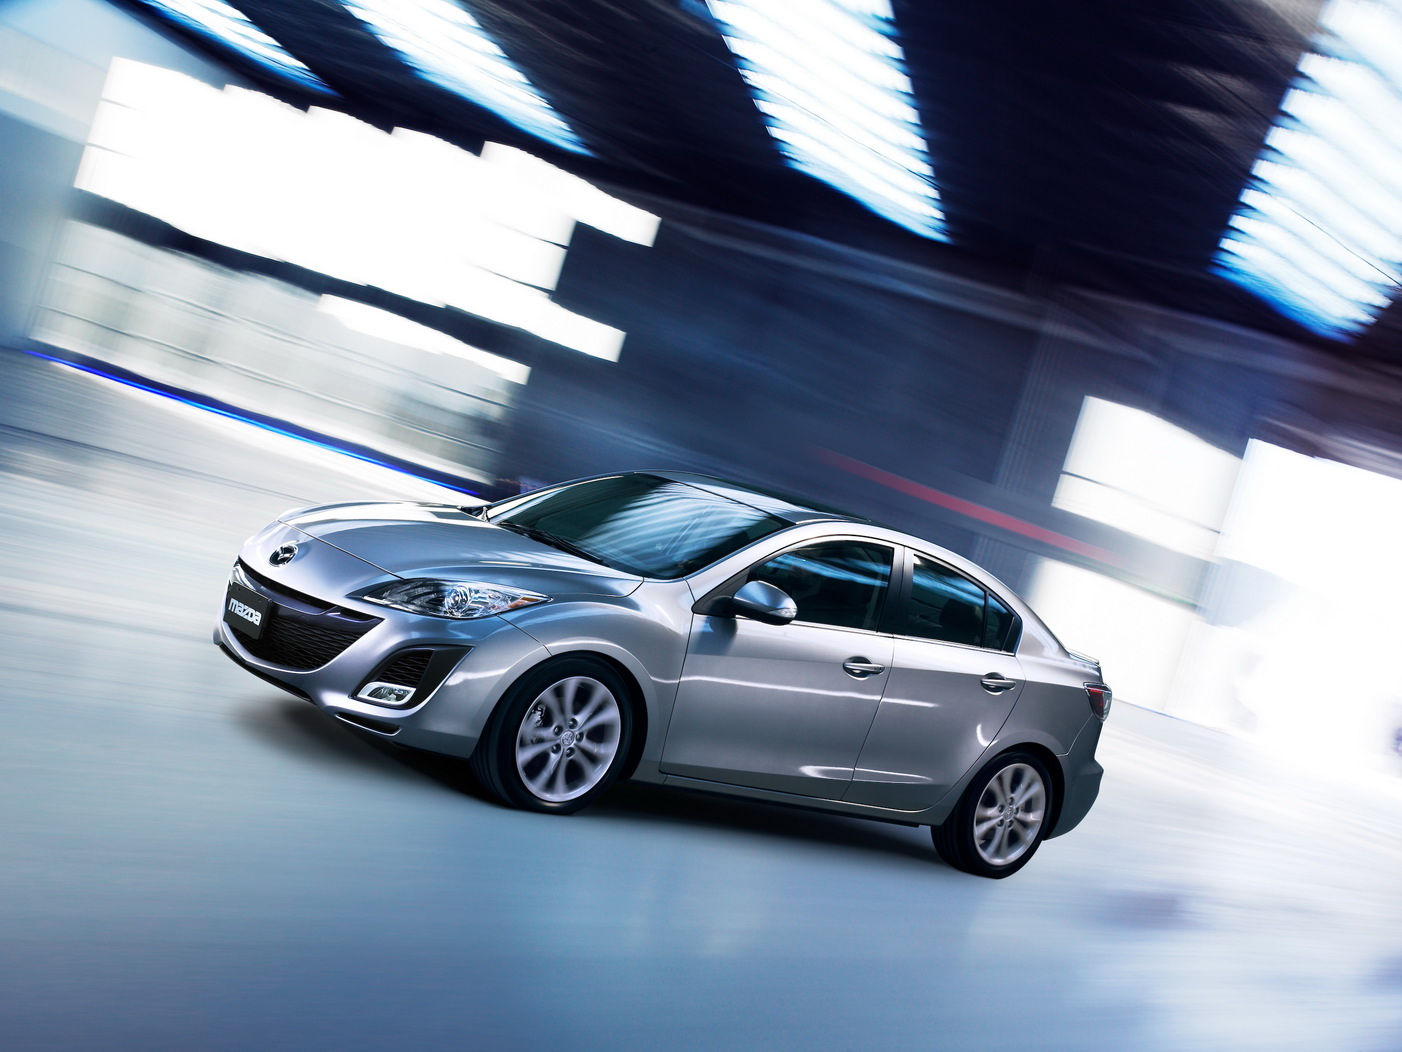 All New 2010 Mazda3 Revealed At The La 2008 Photo Video It S Your Auto World New Cars